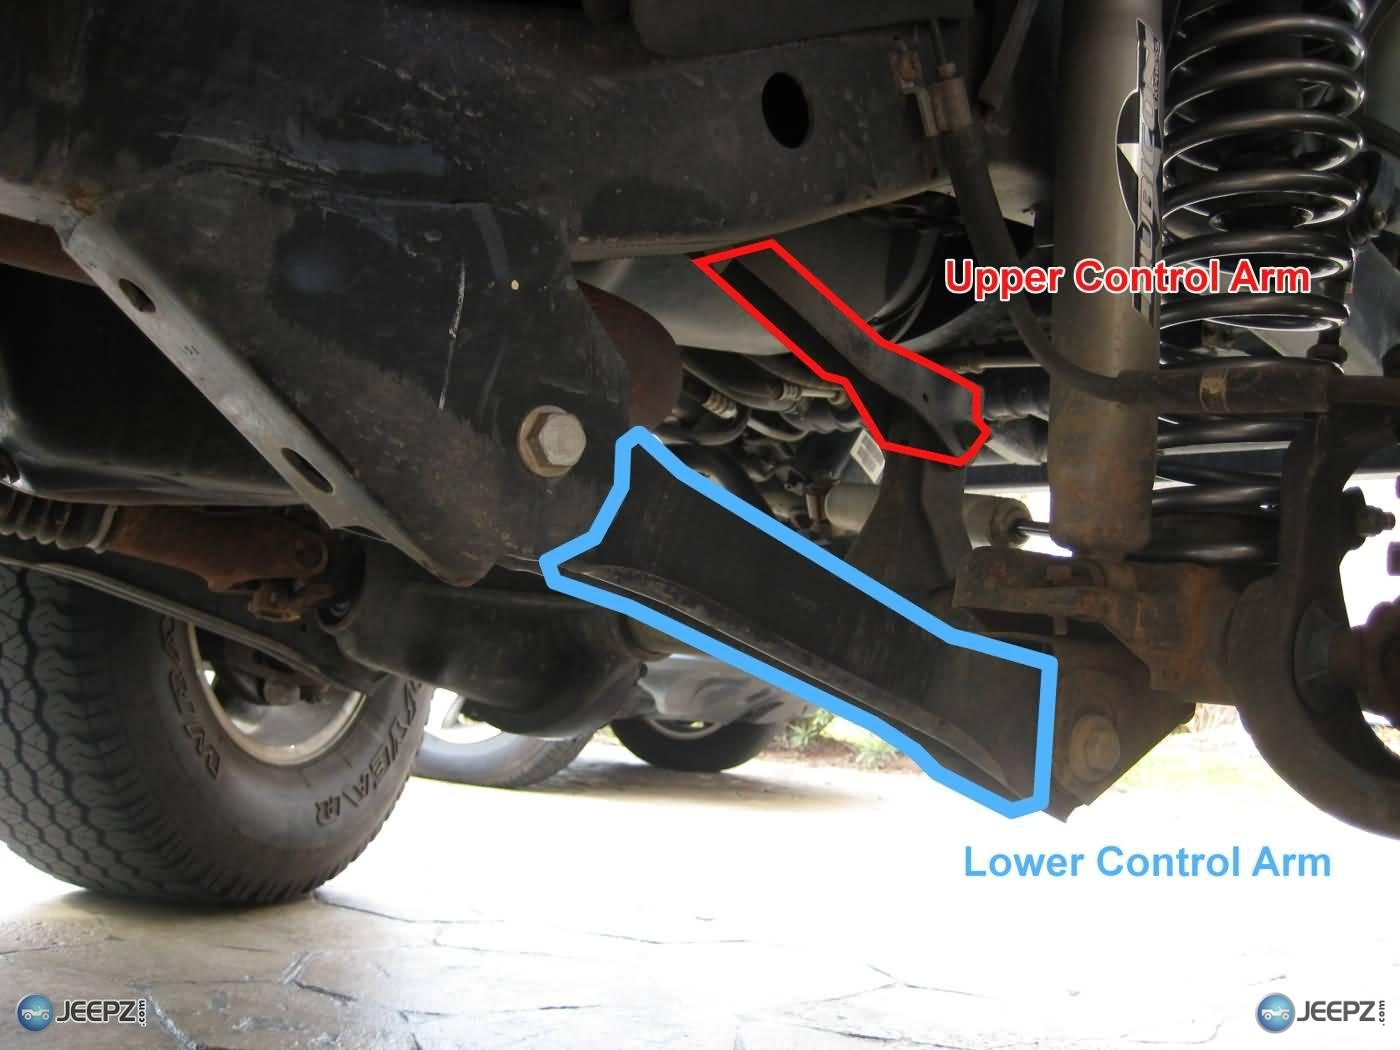 how to tell if my motorcyle tire needs replaceing